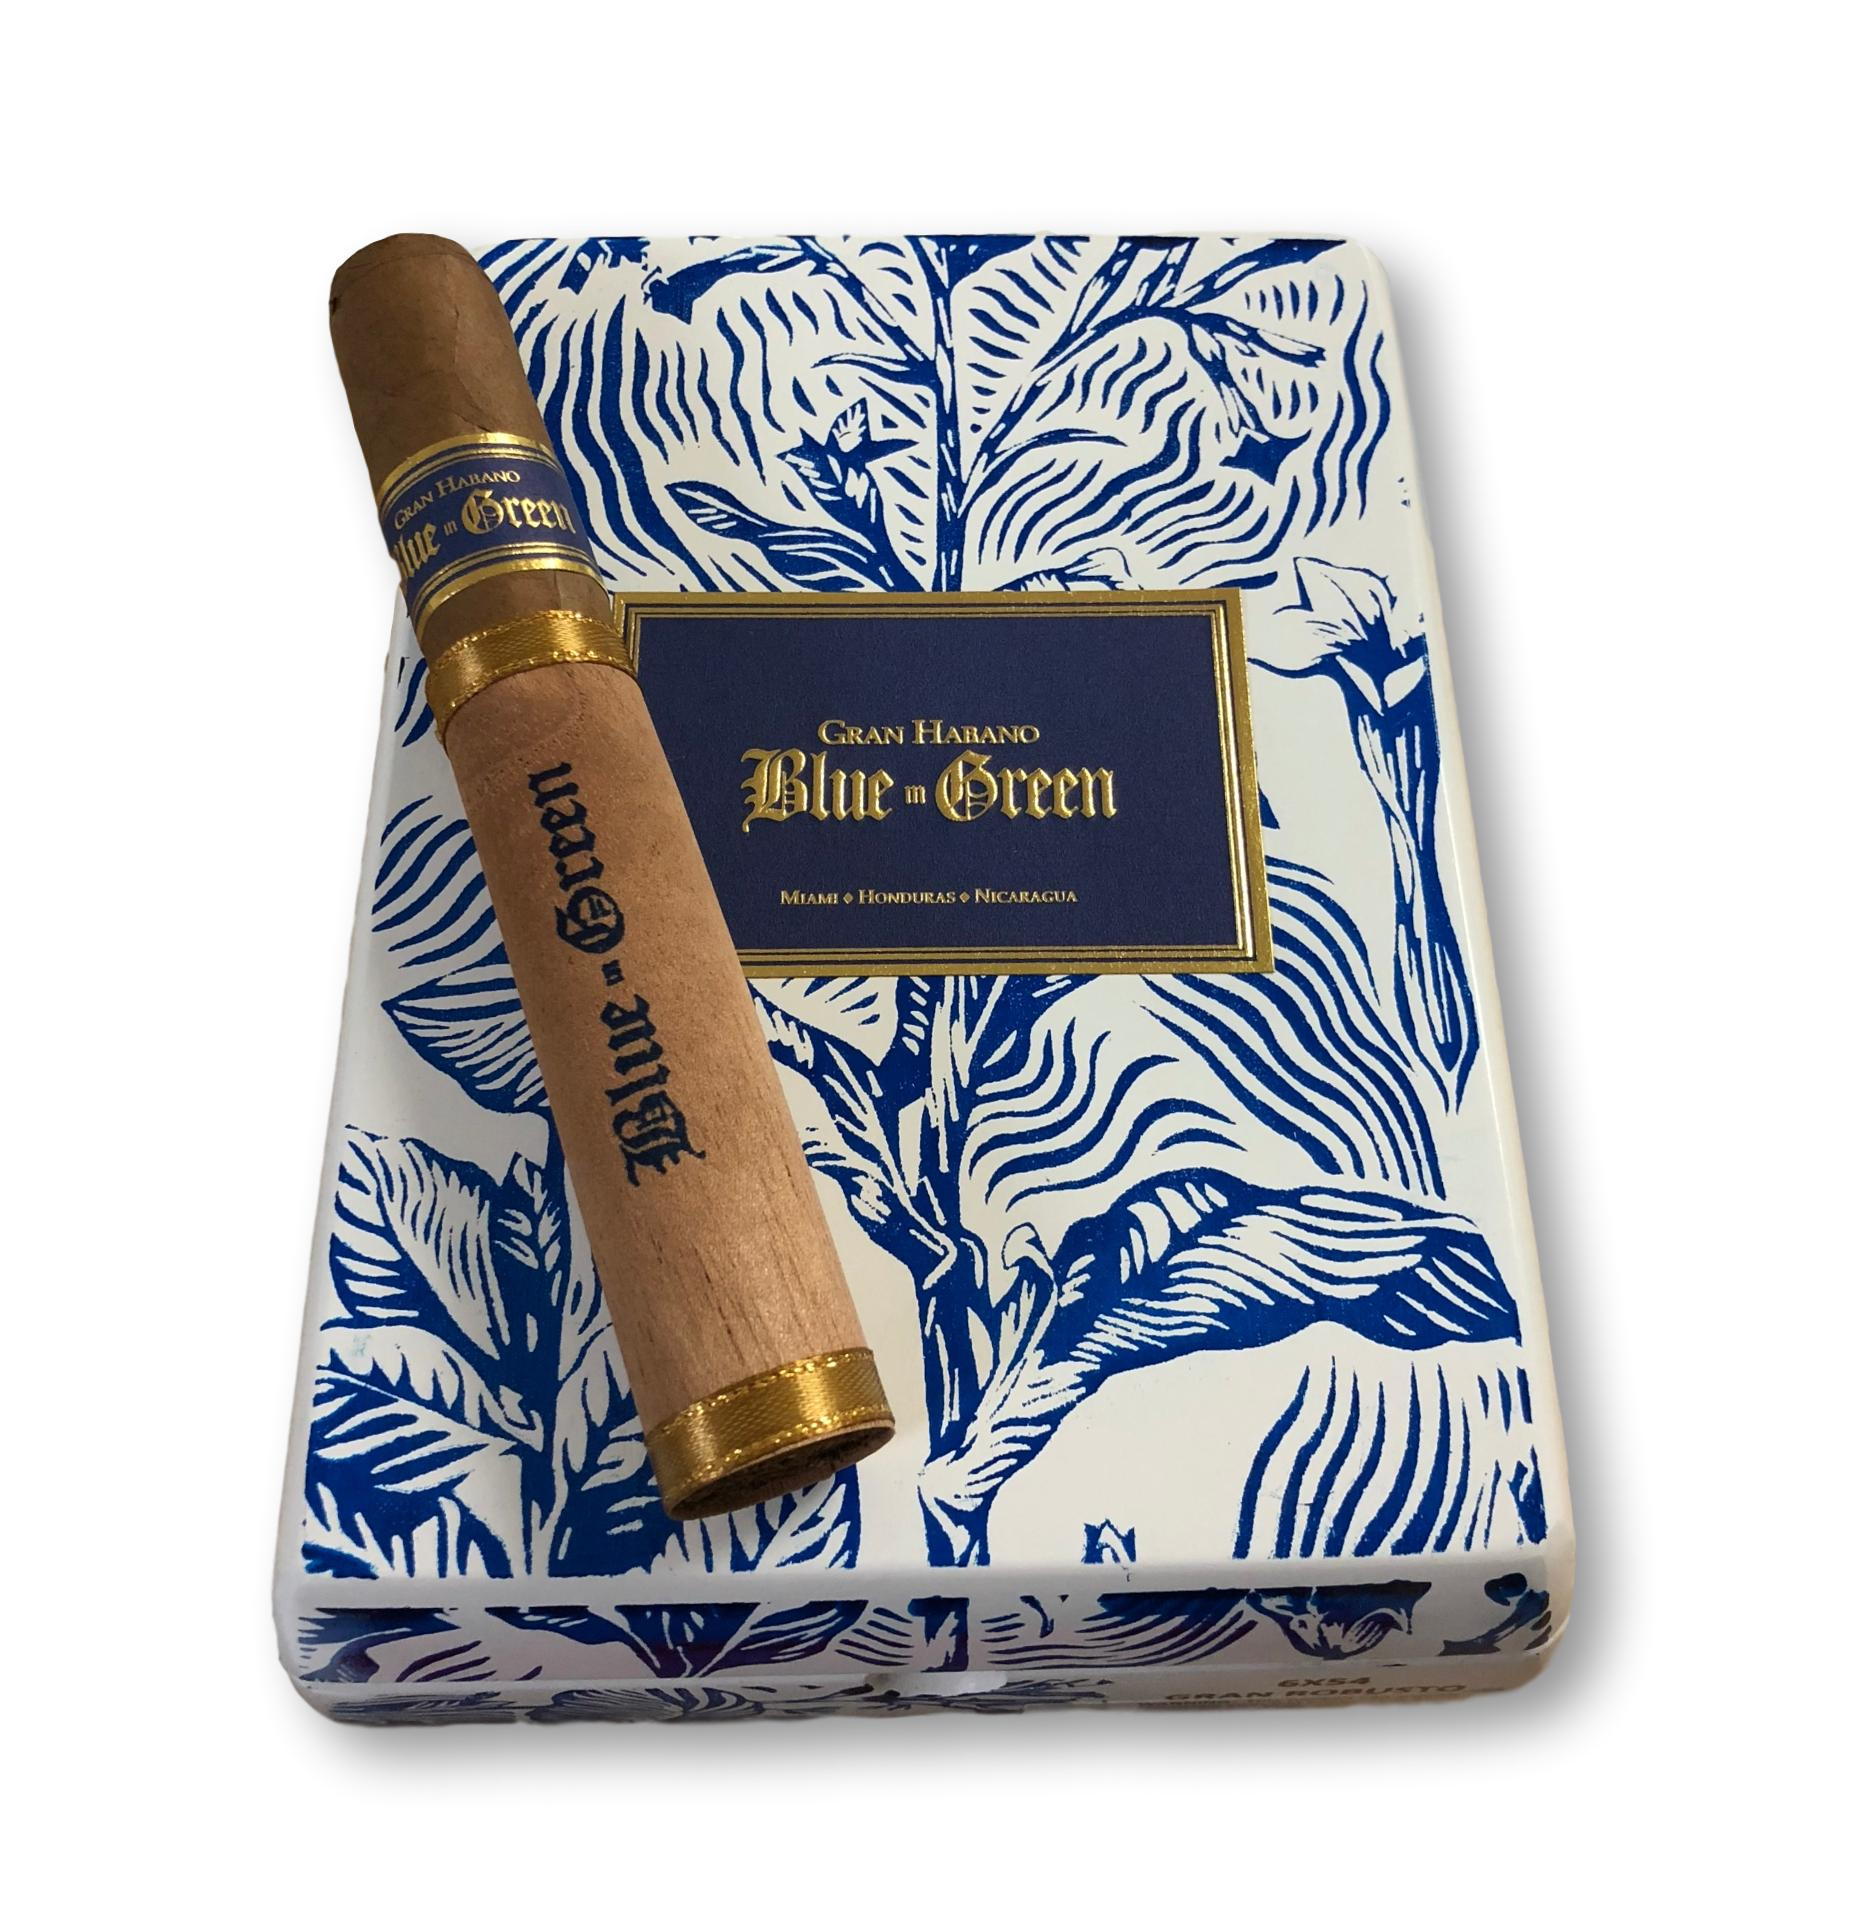 Gran Habano Blue in Green